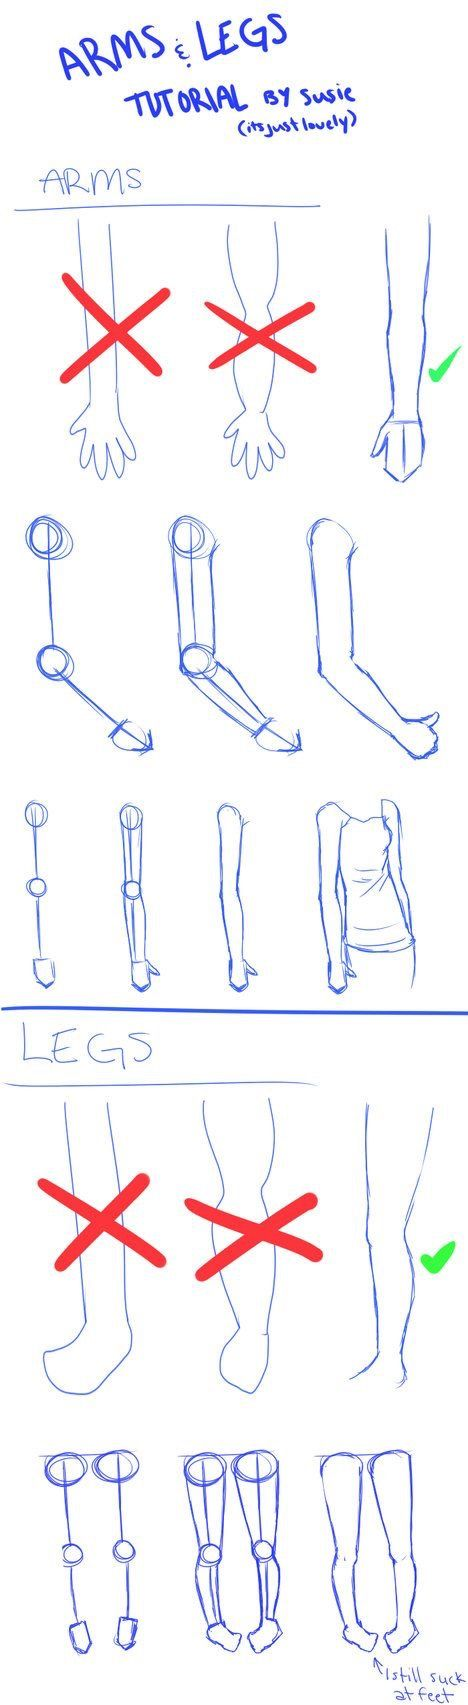 how to draw arms and legs step by step